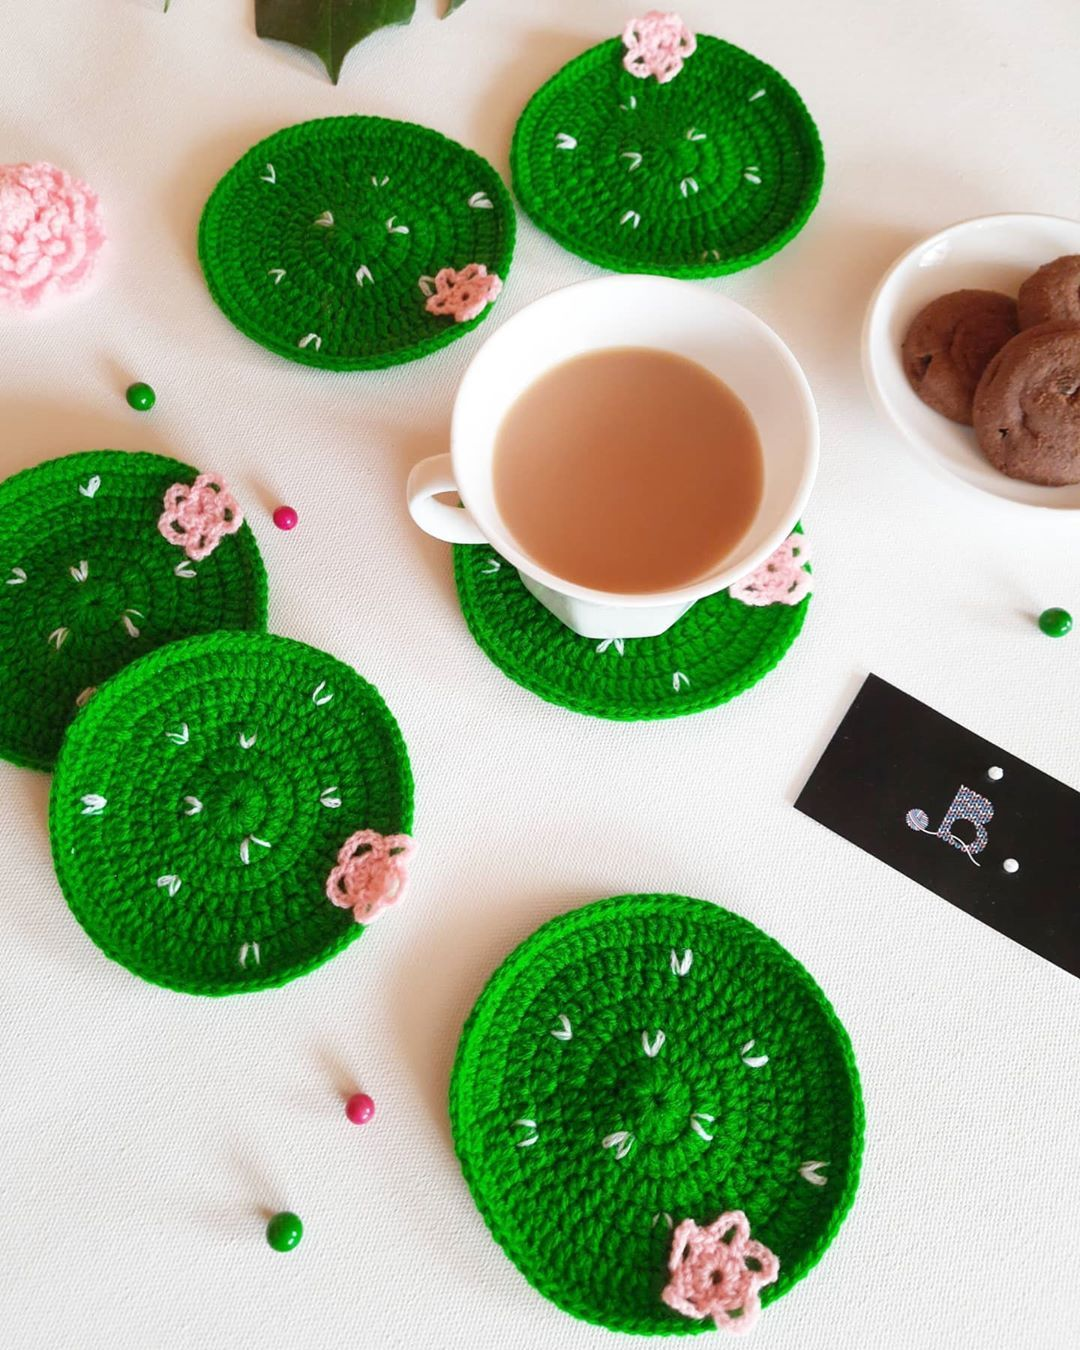 🌵Cactus inspired Table Coasters to protect your furniture and to add a bit of decor in your life.🌵 Colour - Emerald Green or Military Green. Quantity - Set of 6. Size - 4.5